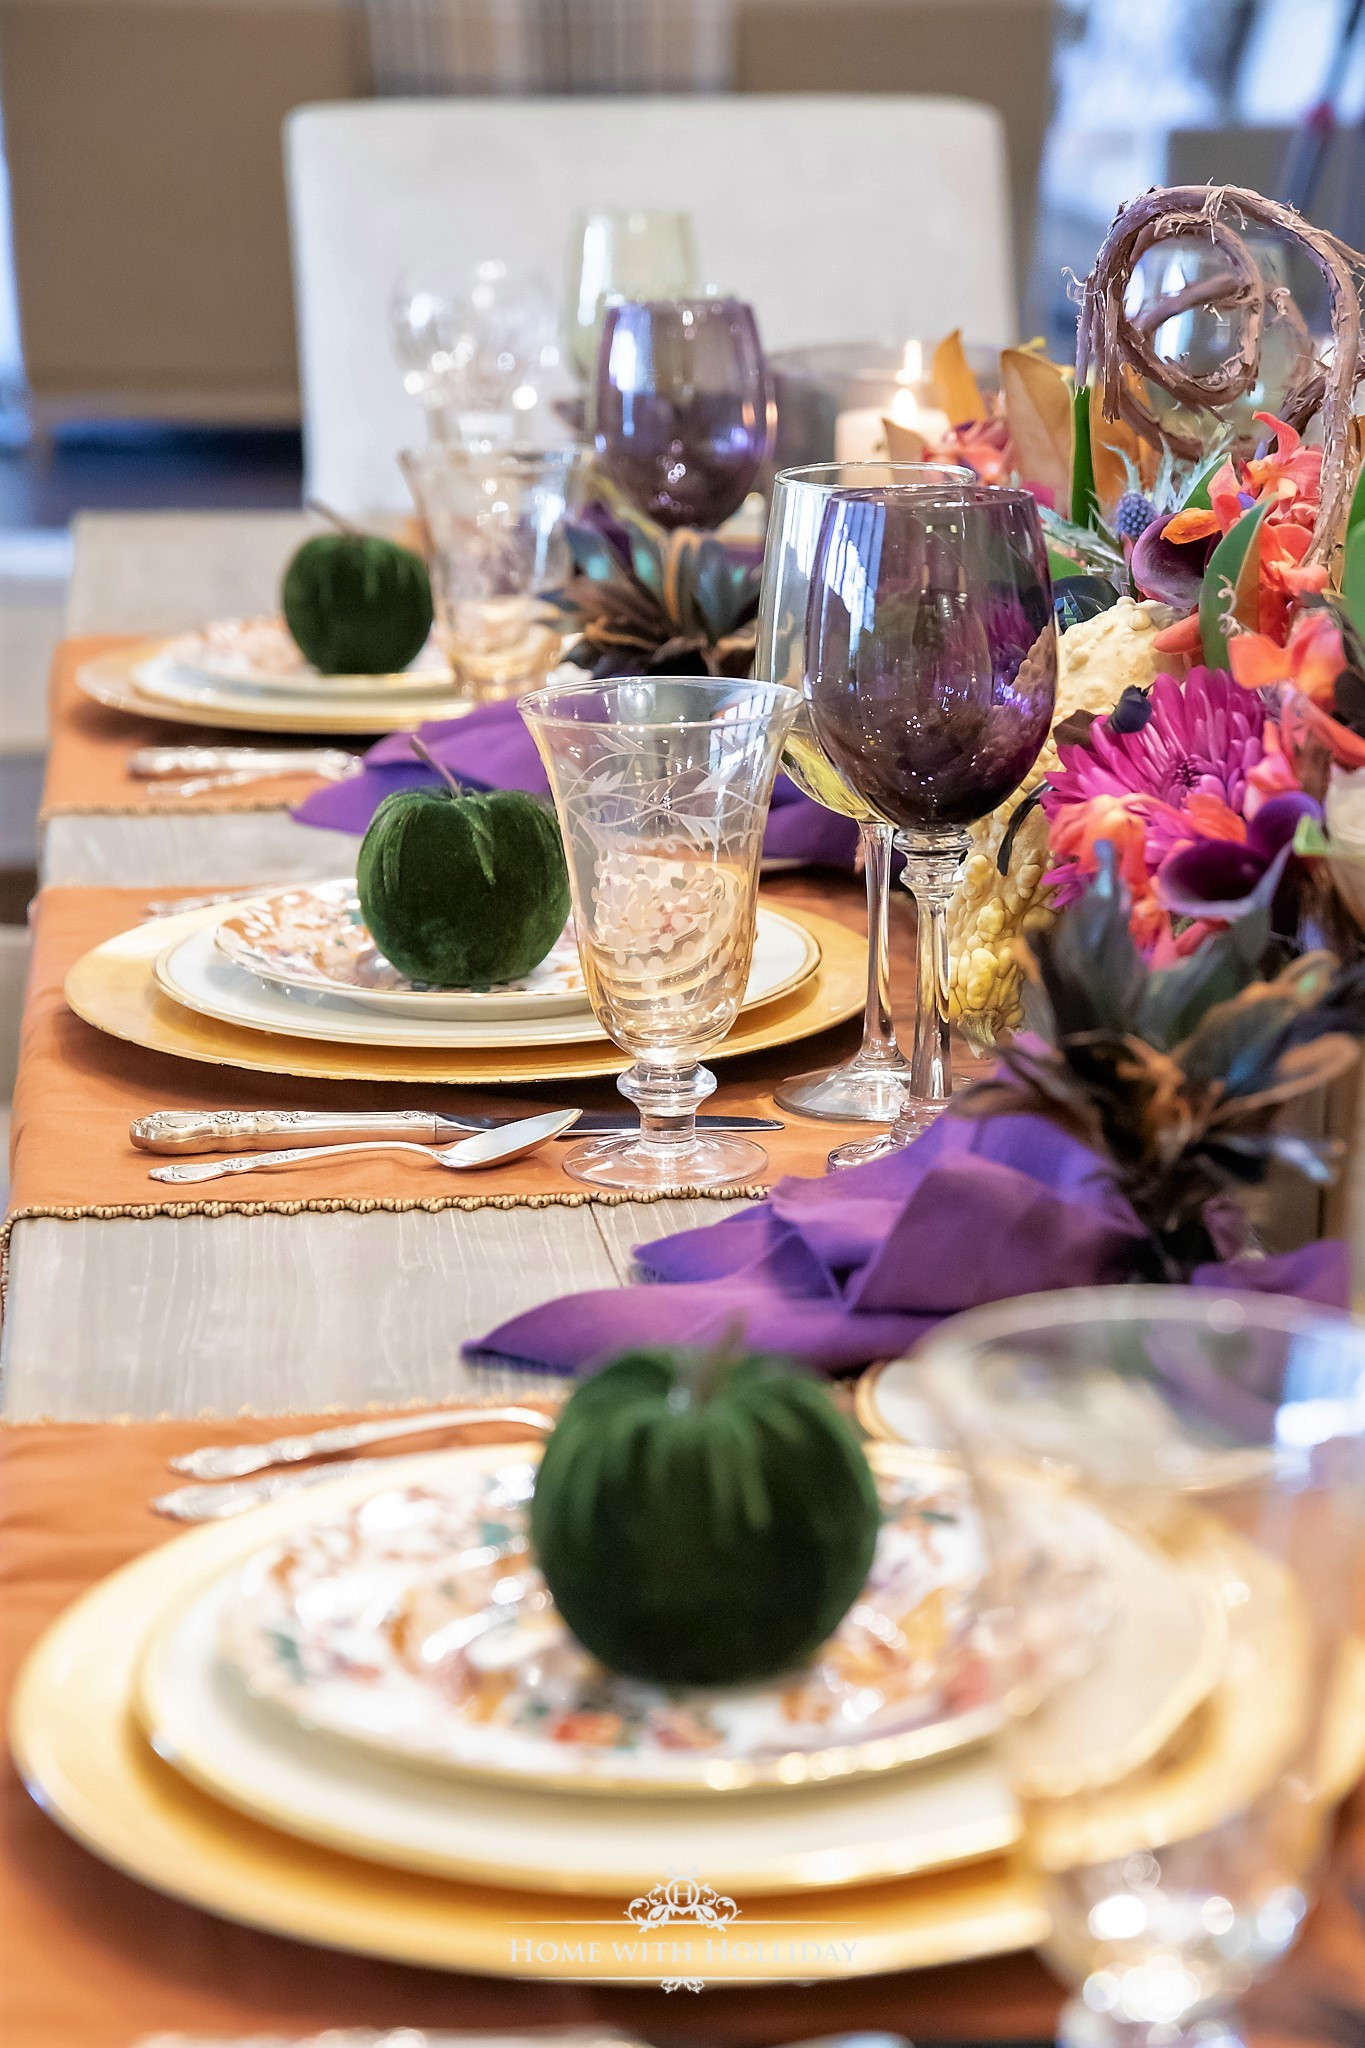 Place Settings for my Jewel-toned Thanksgiving Table Setting - Home with Holliday